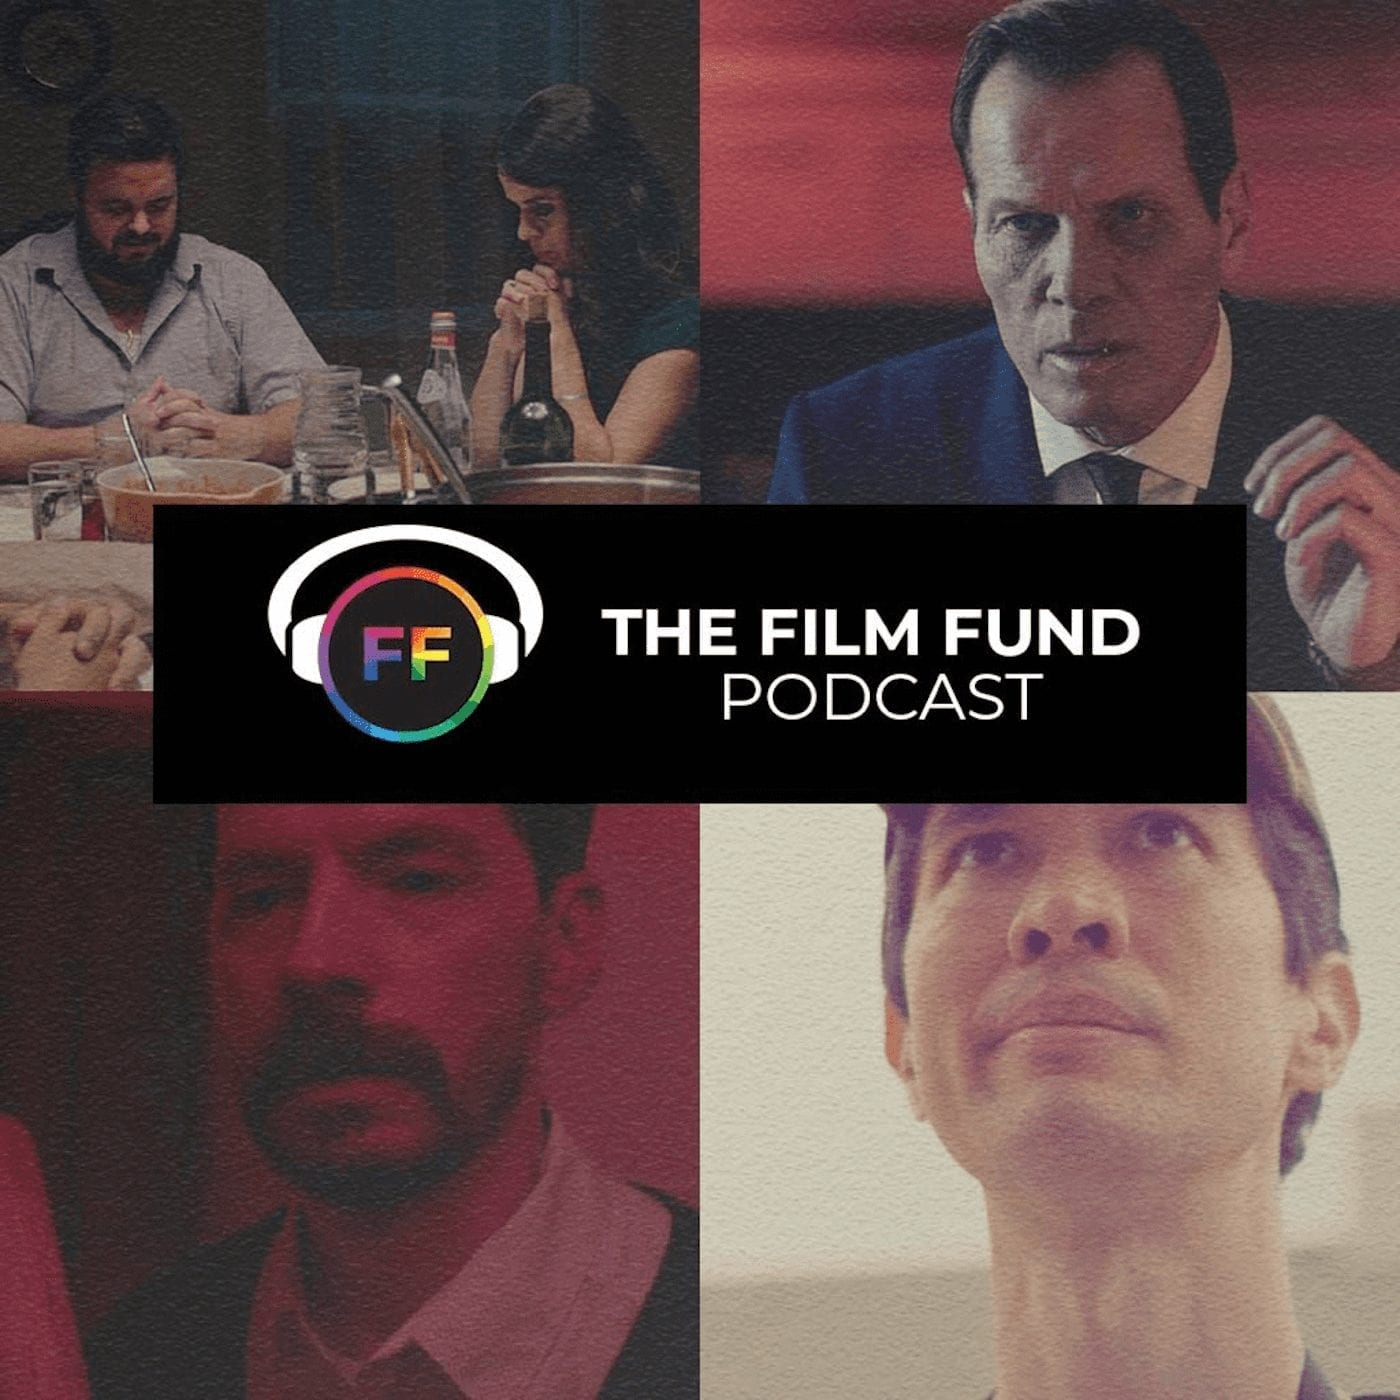 The Film Fund Podcast